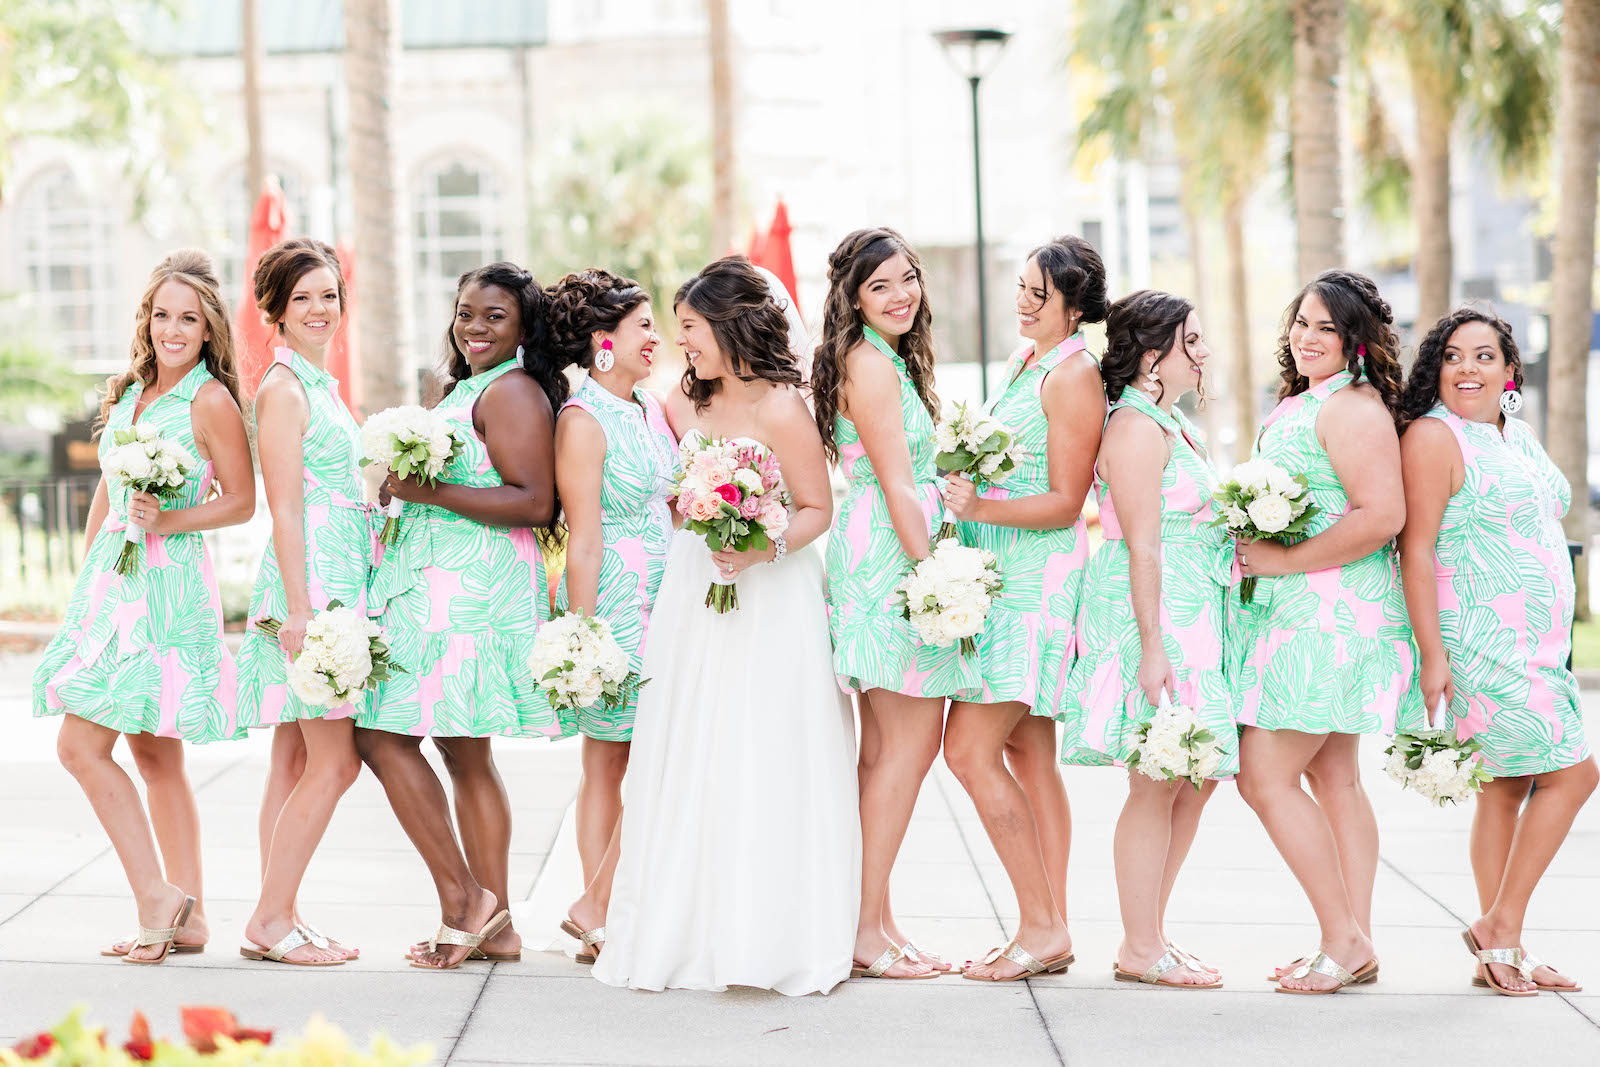 Tropical Bride and Bridesmaids in Matching Pink and Seafoam Green Short Dresses Holding White Floral Bouquets | Tampa Bay Wedding Hair and Makeup Adore Bridal | Blogger Girl Meets Bow